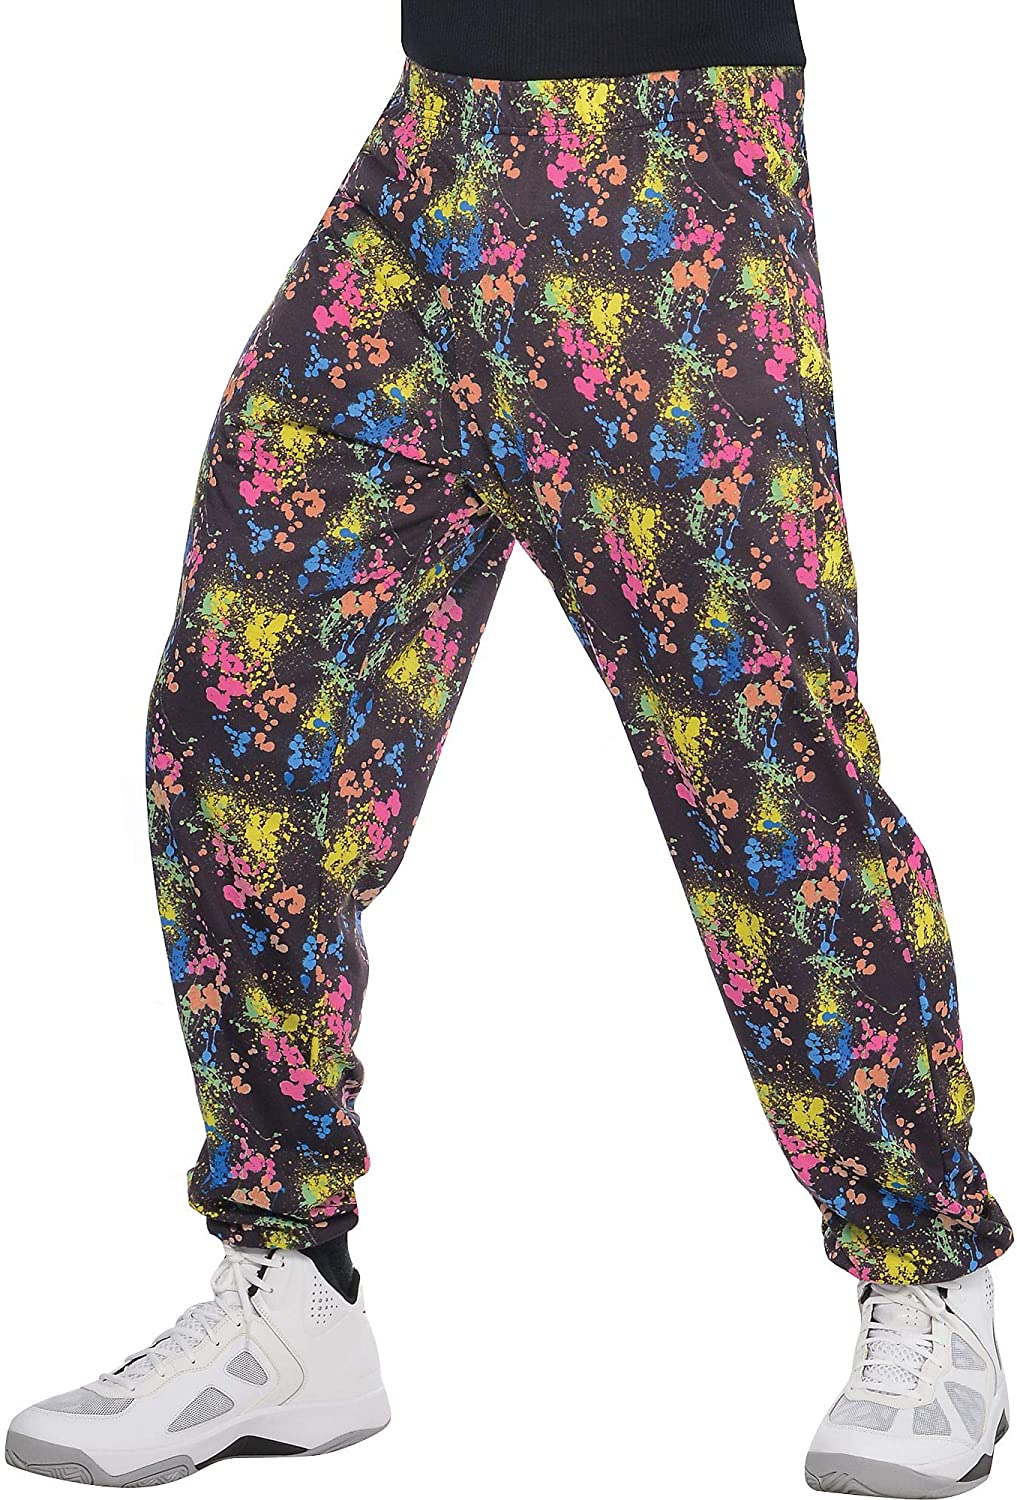 80s Mens Jeans, Pants, Parachute, Tracksuits amscan 80s Neon Muscle Pants for Men Halloween Costume Accessory with Paint-Splatter Print $24.99 AT vintagedancer.com